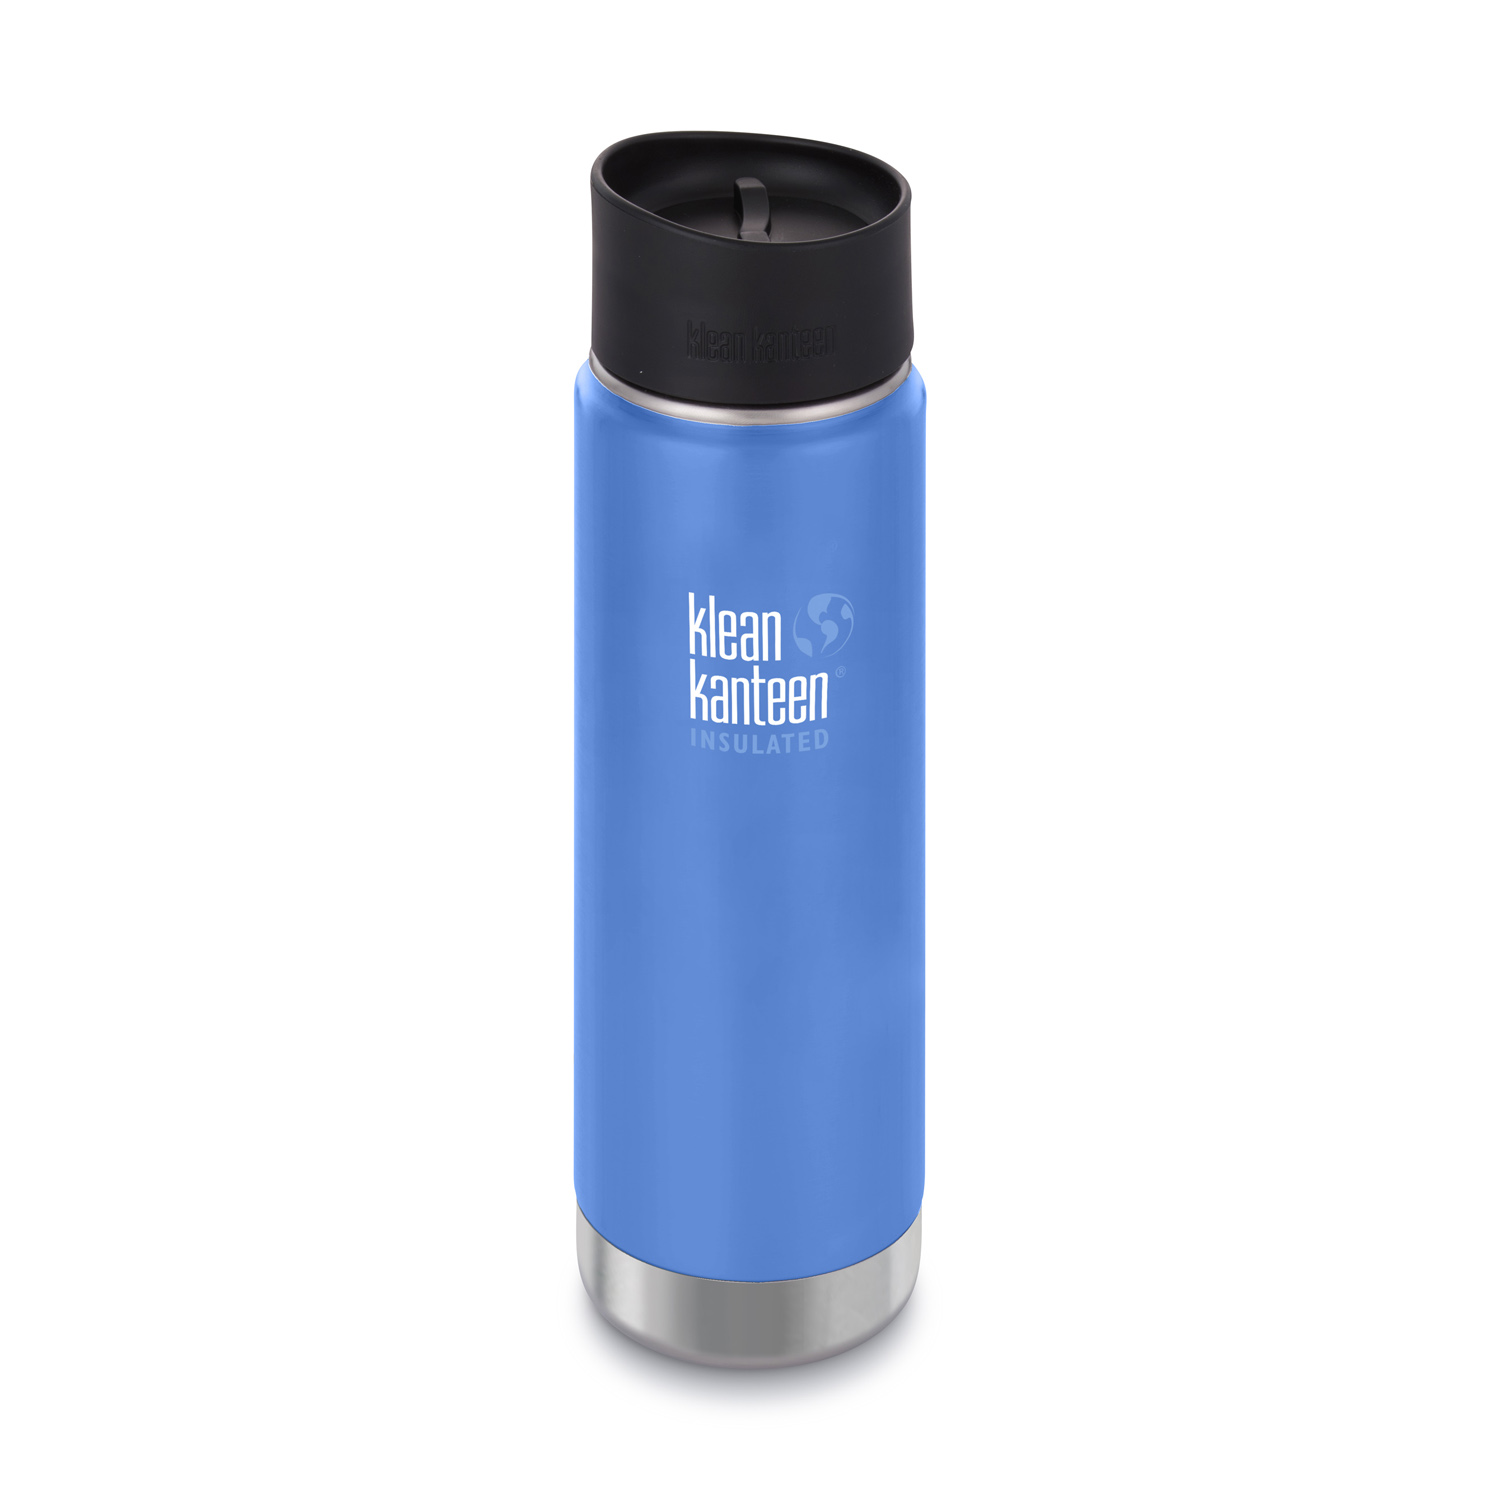 Traveller Cafe 2 Buy Wide 0pacific Planet Insulated Klean 20ozwith Cap SkyIn Singaporeamp; Malaysia The Kanteen WEH2D9I